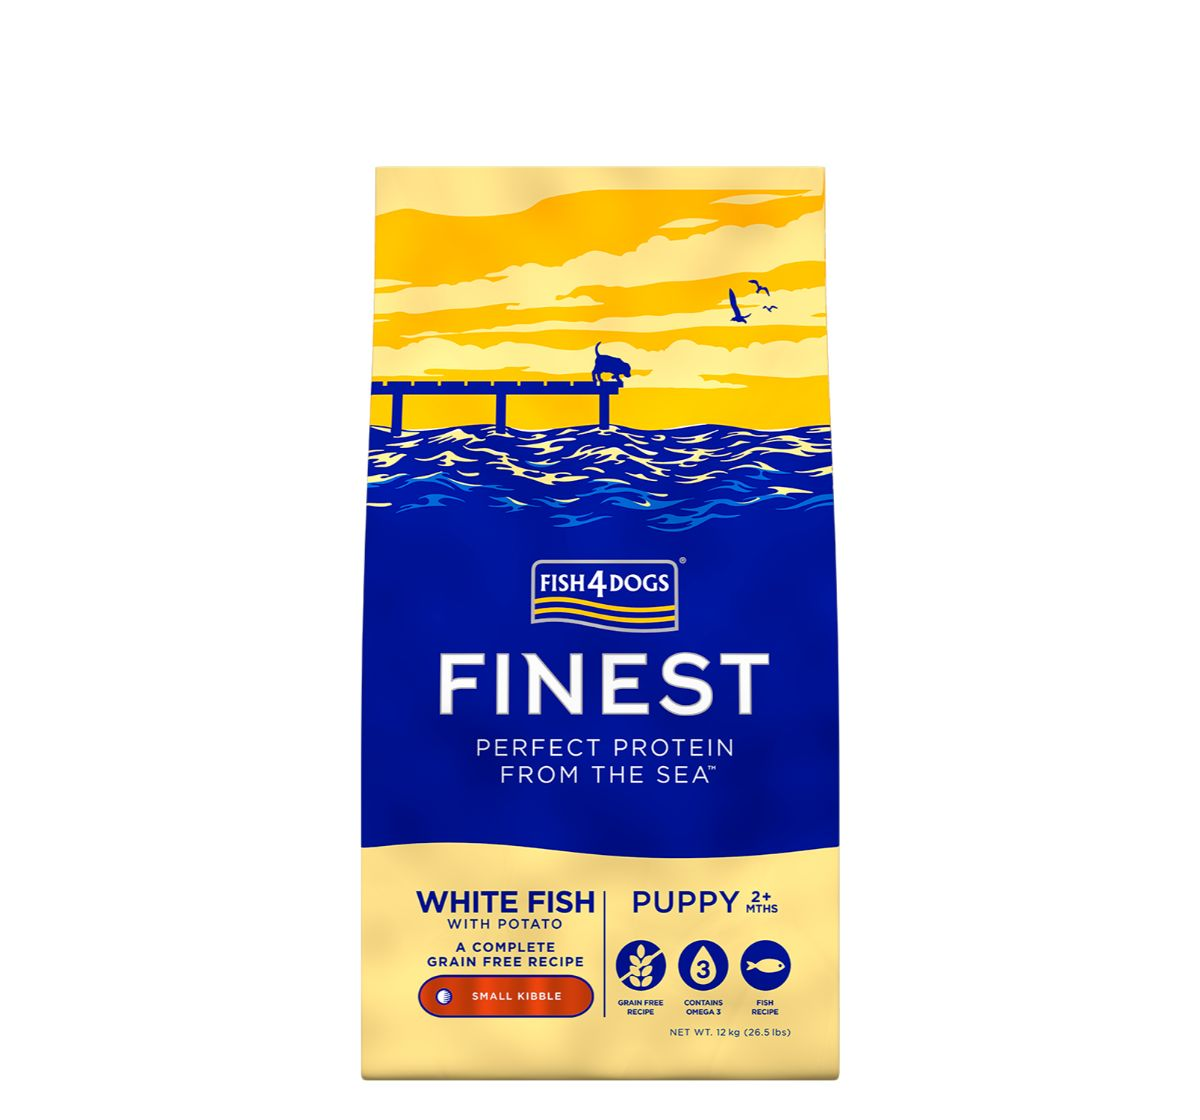 Fish4Dogs Finest Ocean White Fish Puppy Food - 12 Kg